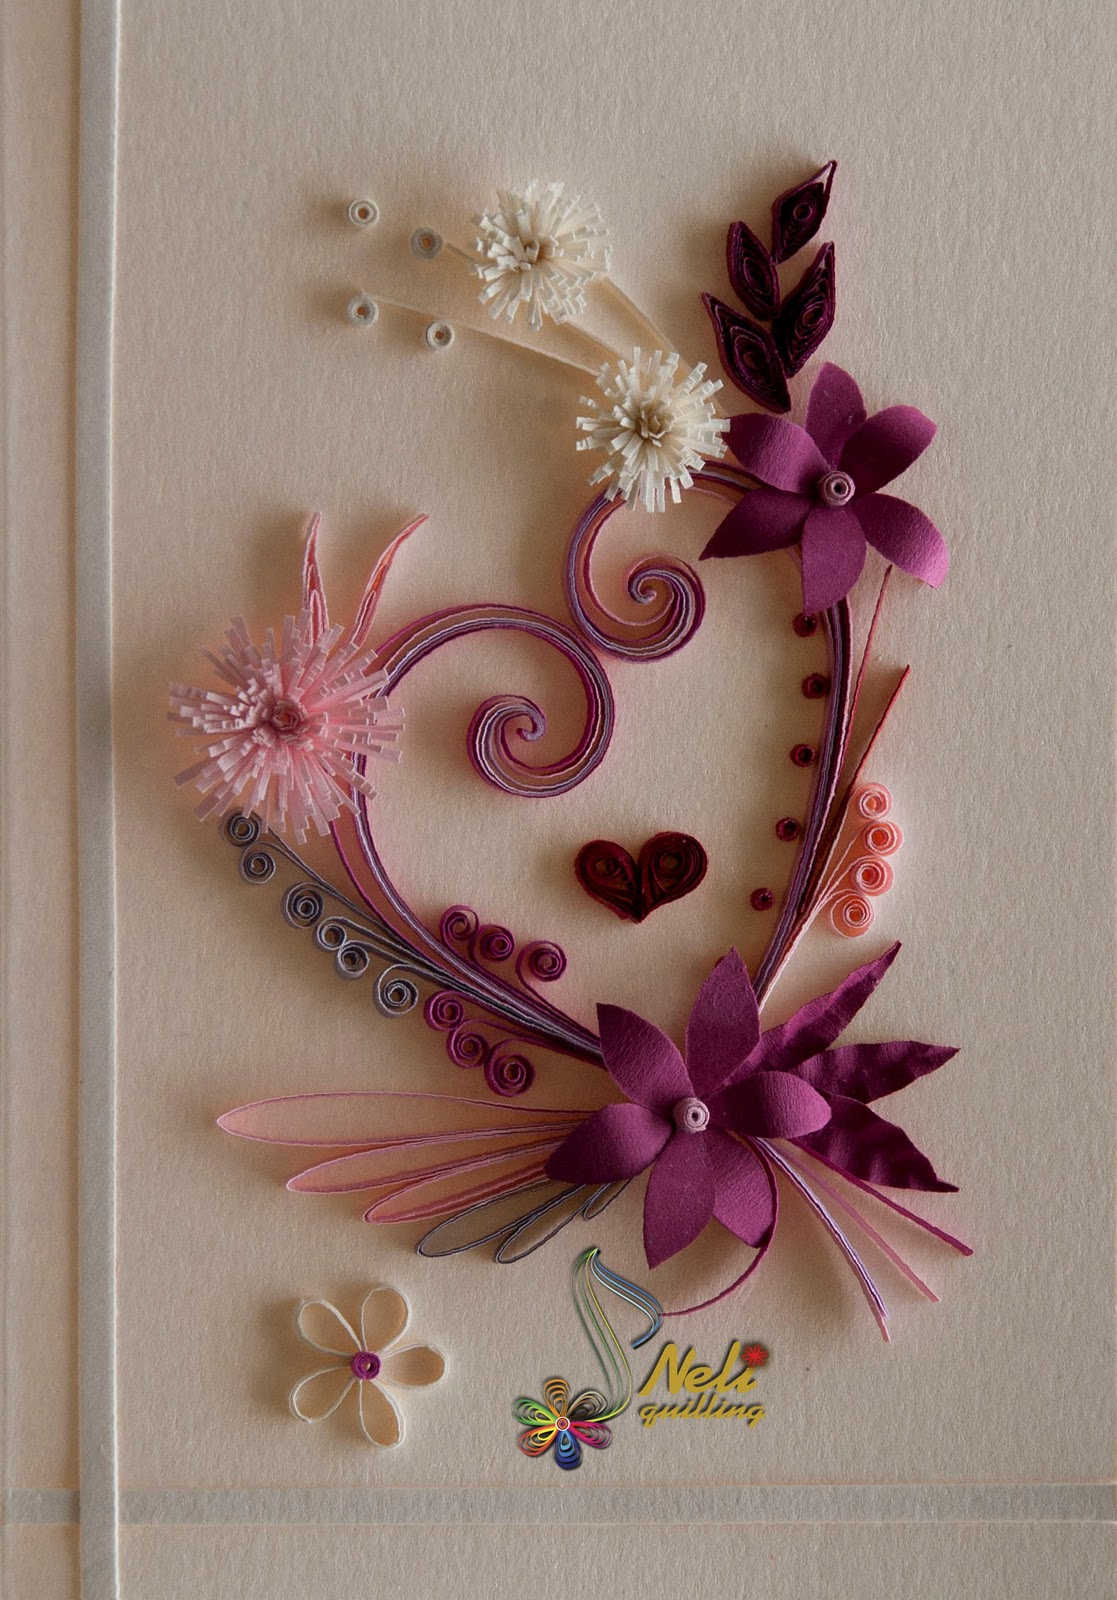 neli quilling art quilling cards  with love 2